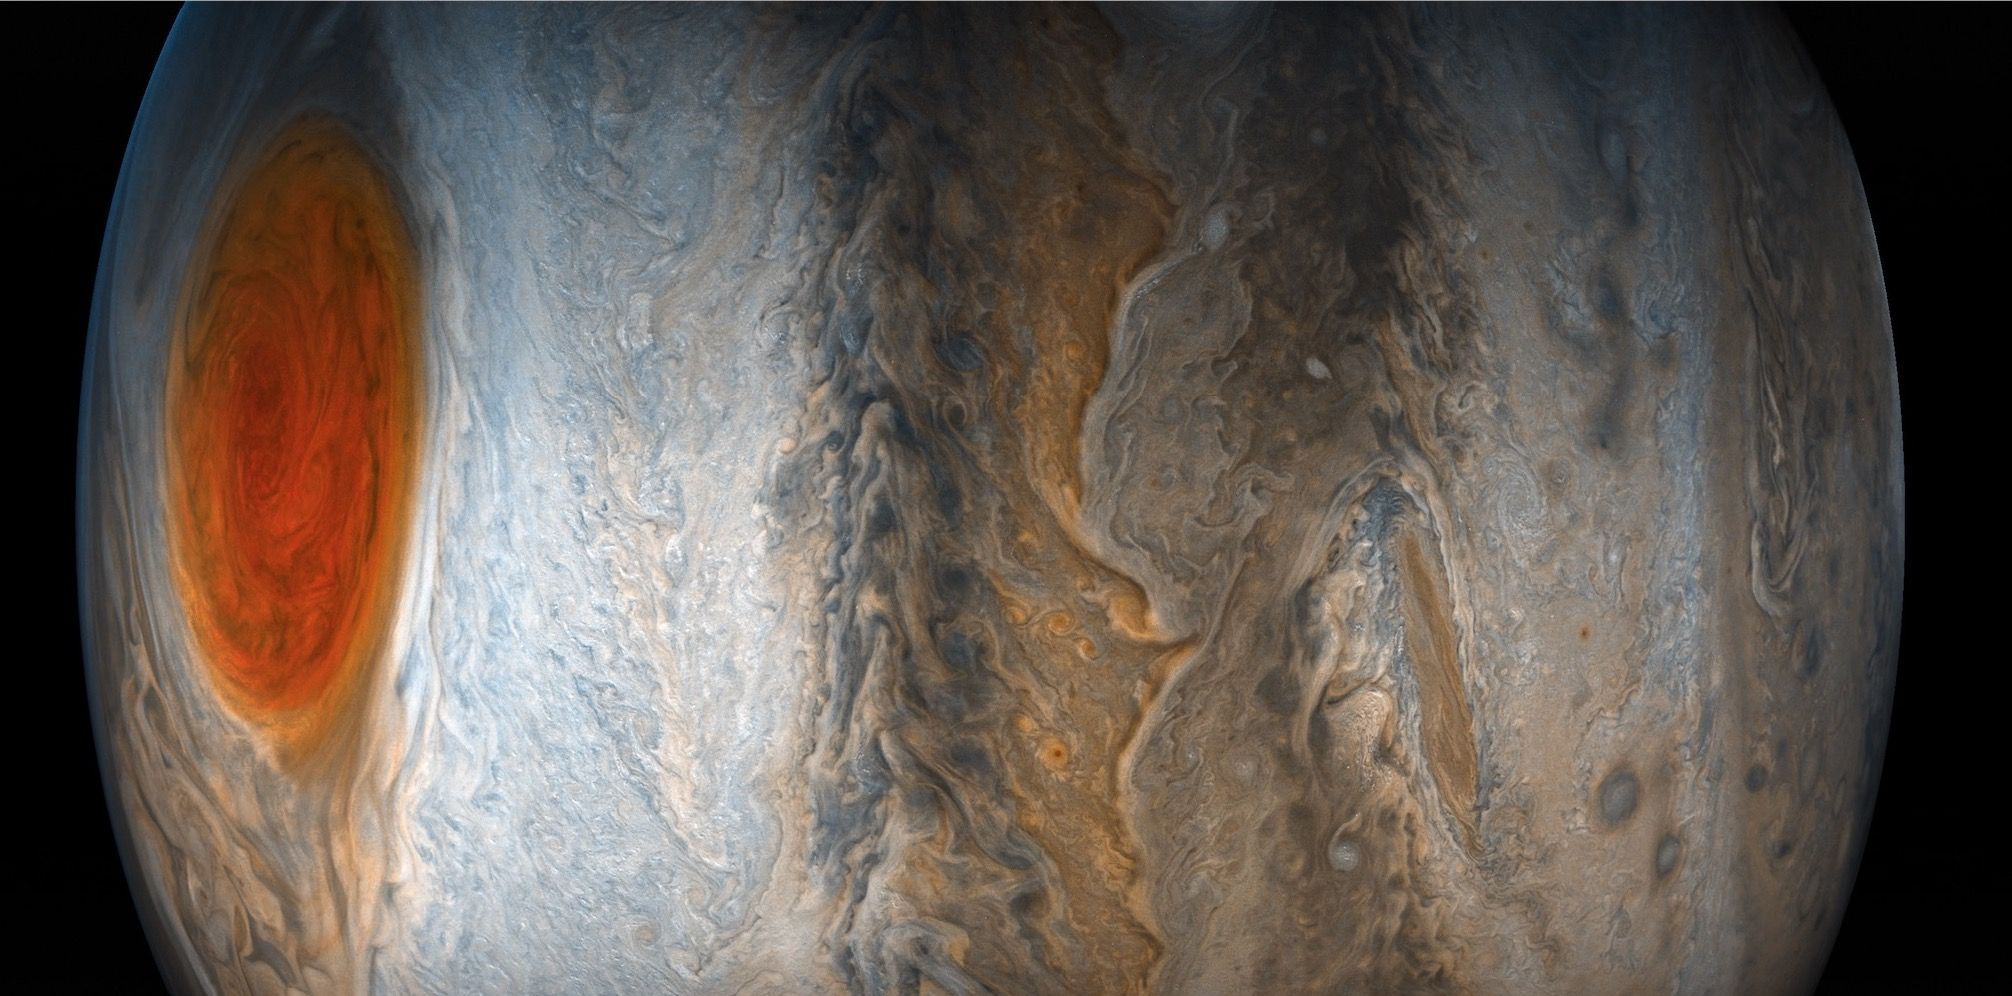 2012x996 Check Out this Amazing Jupiter Wallpaper Picture from JunoCam